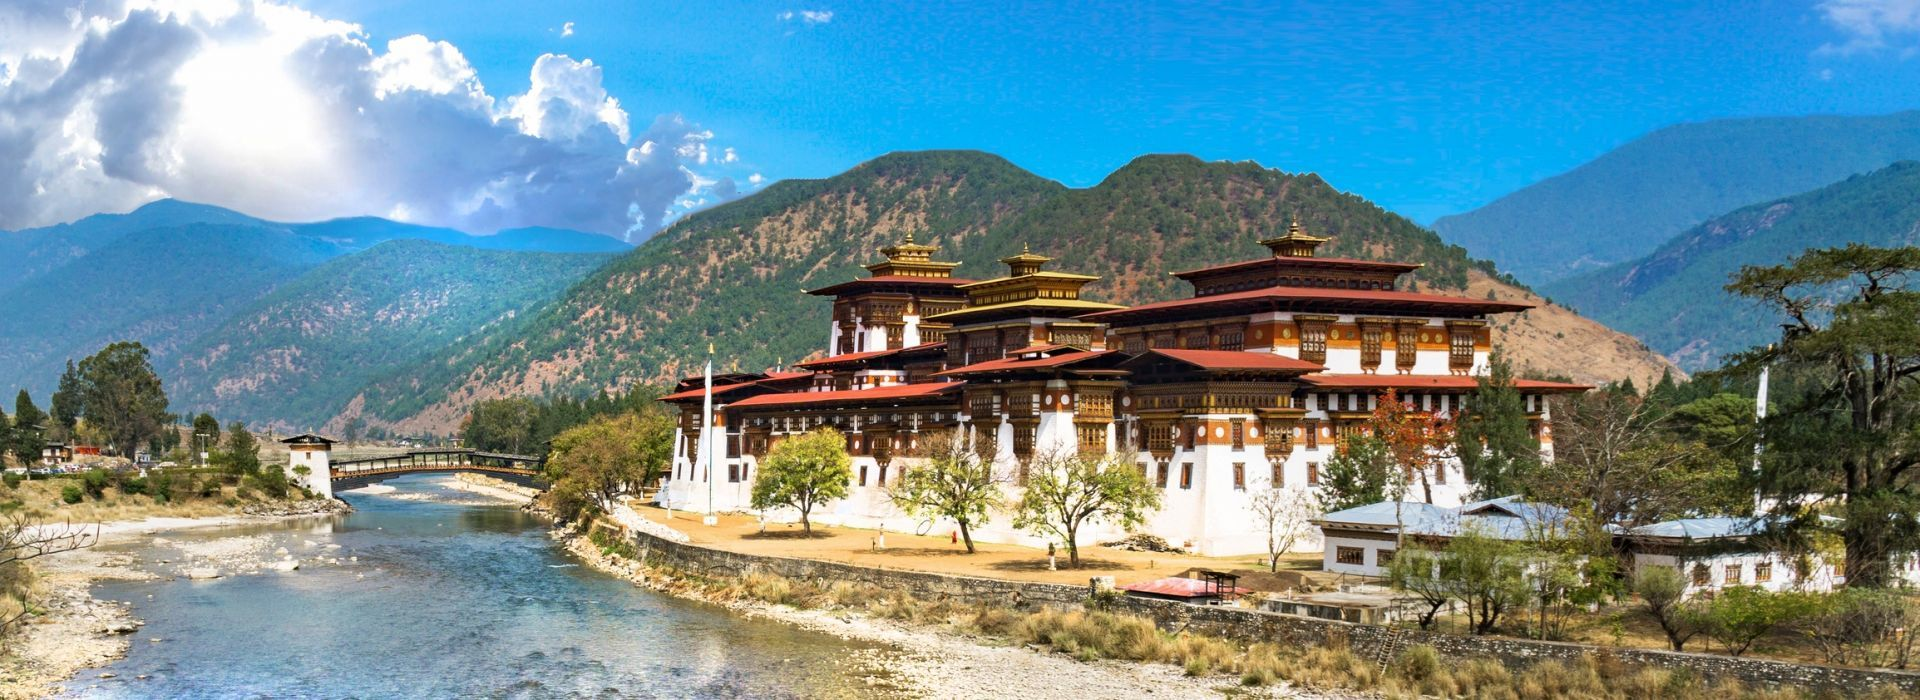 Sightseeing, attractions, culture and history Tours in Punakha